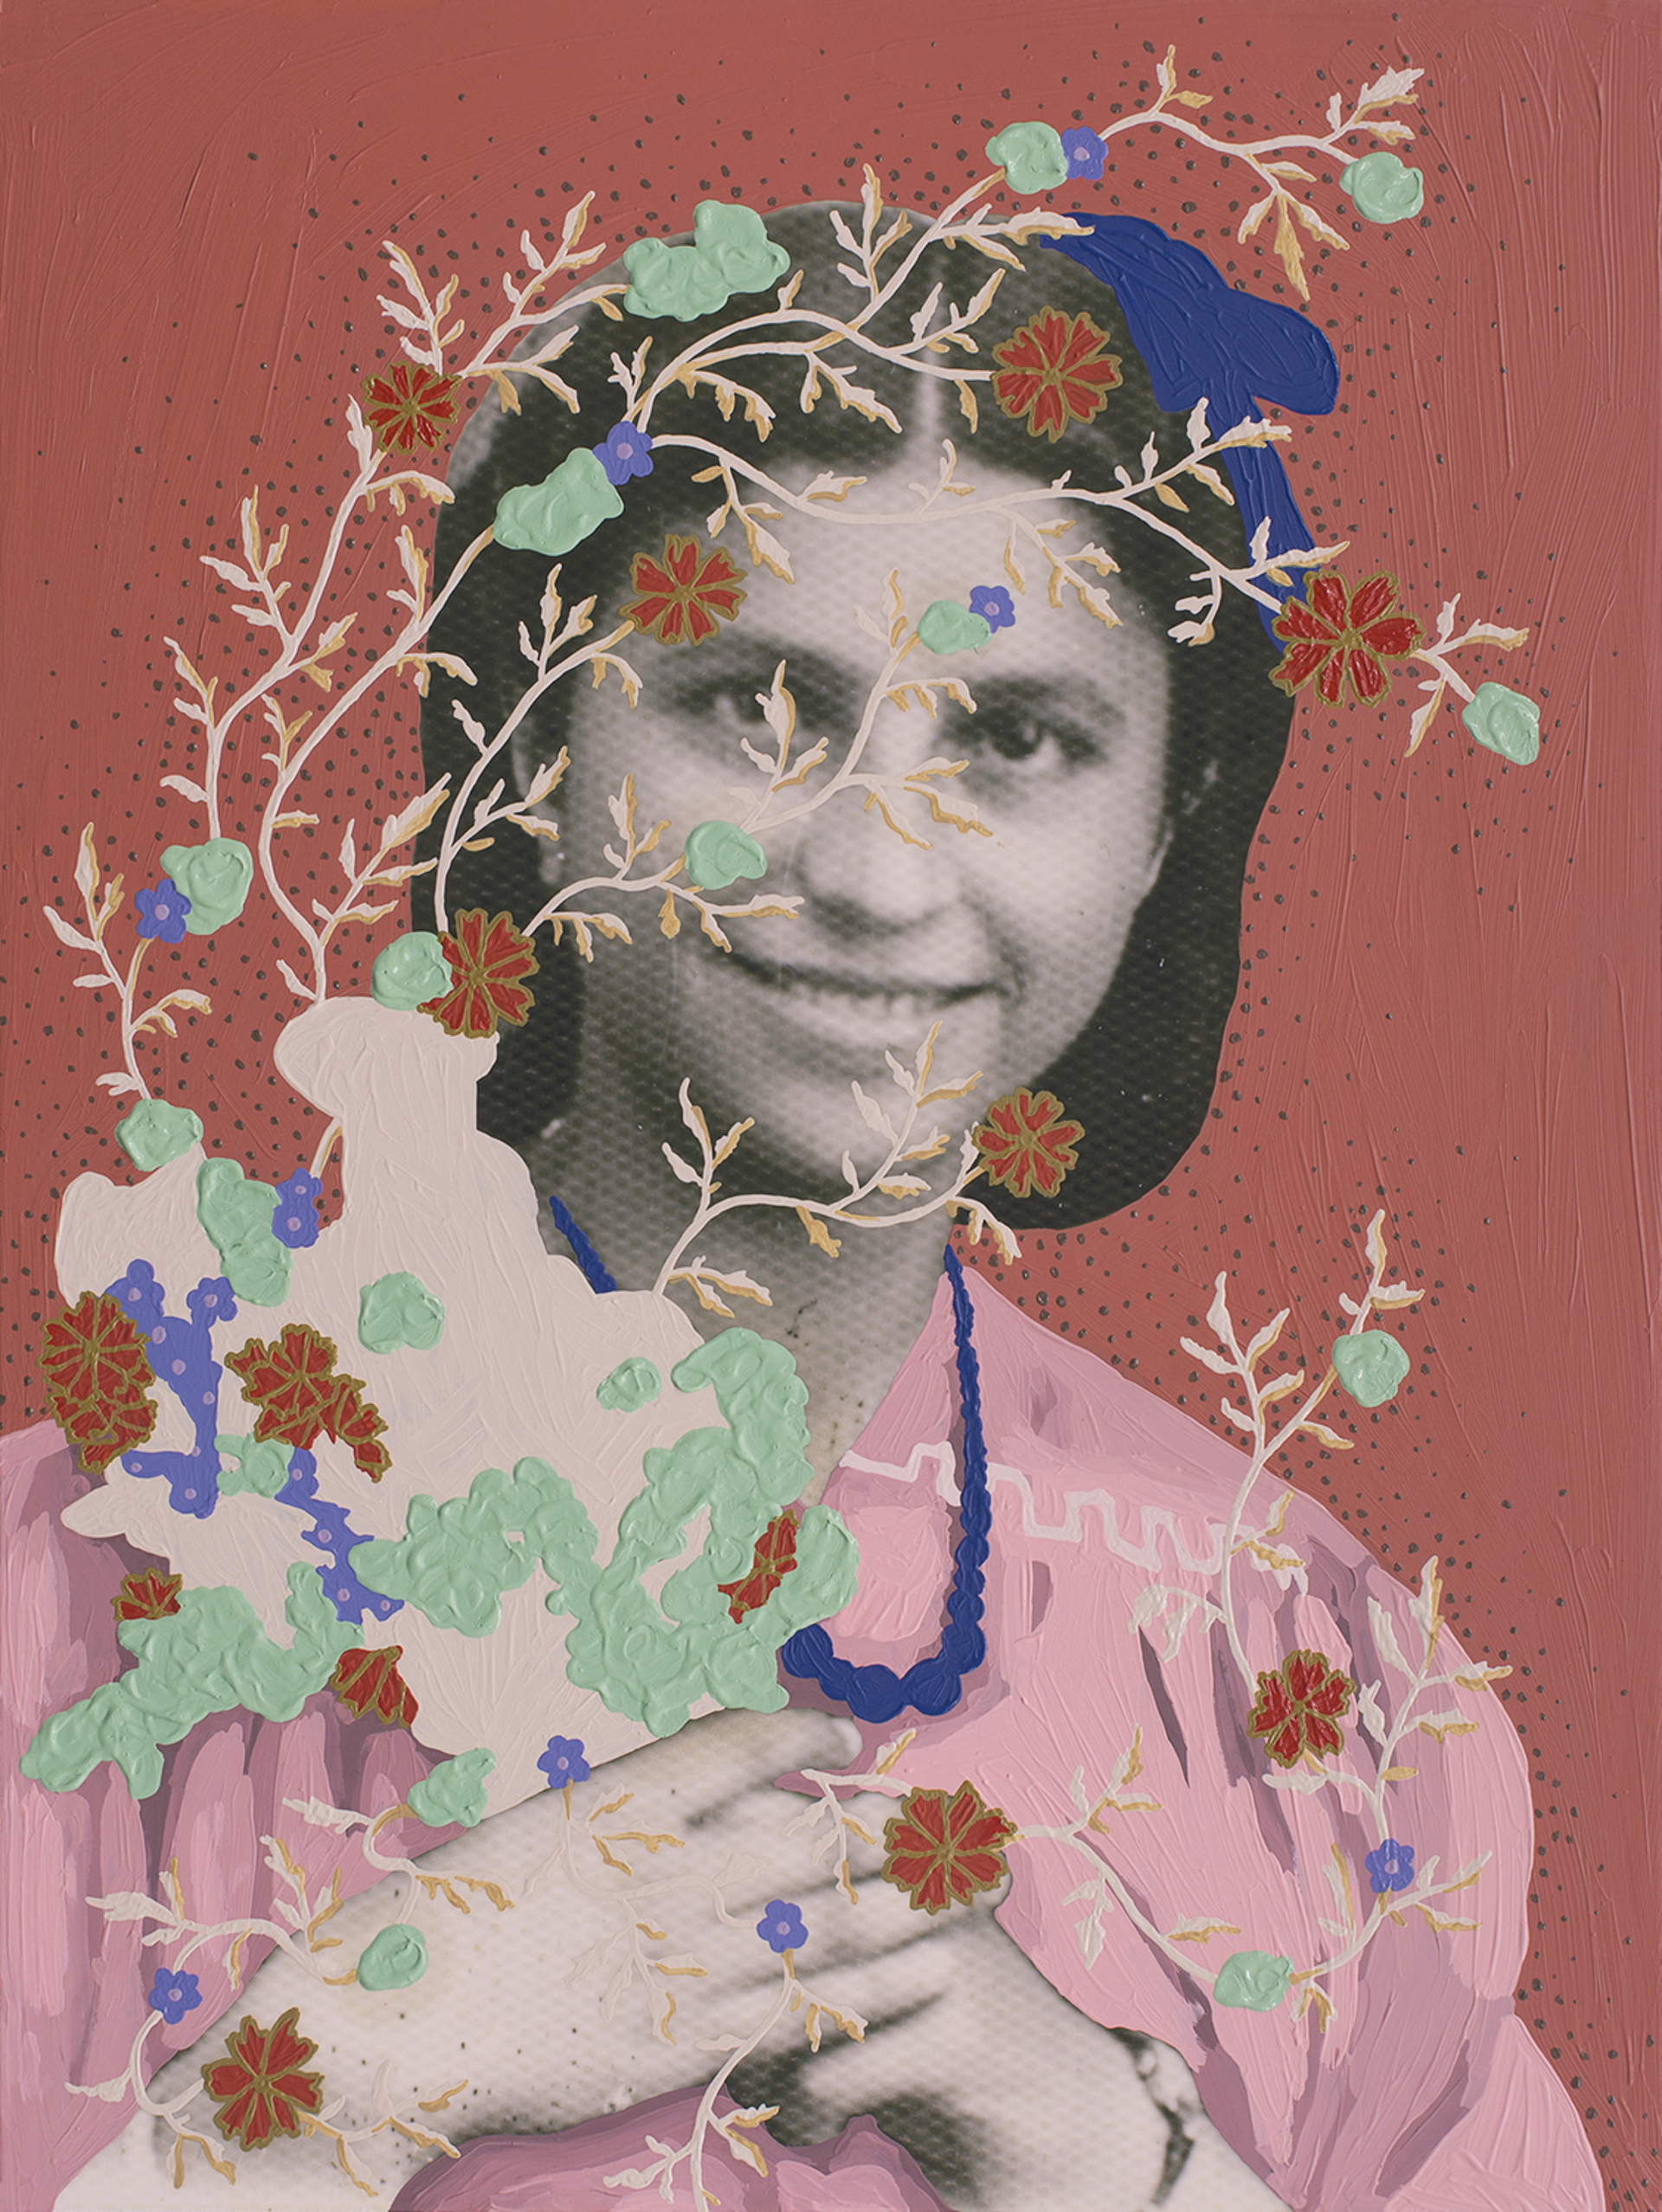 Untitled (Flower Girl) by Daisy Patton